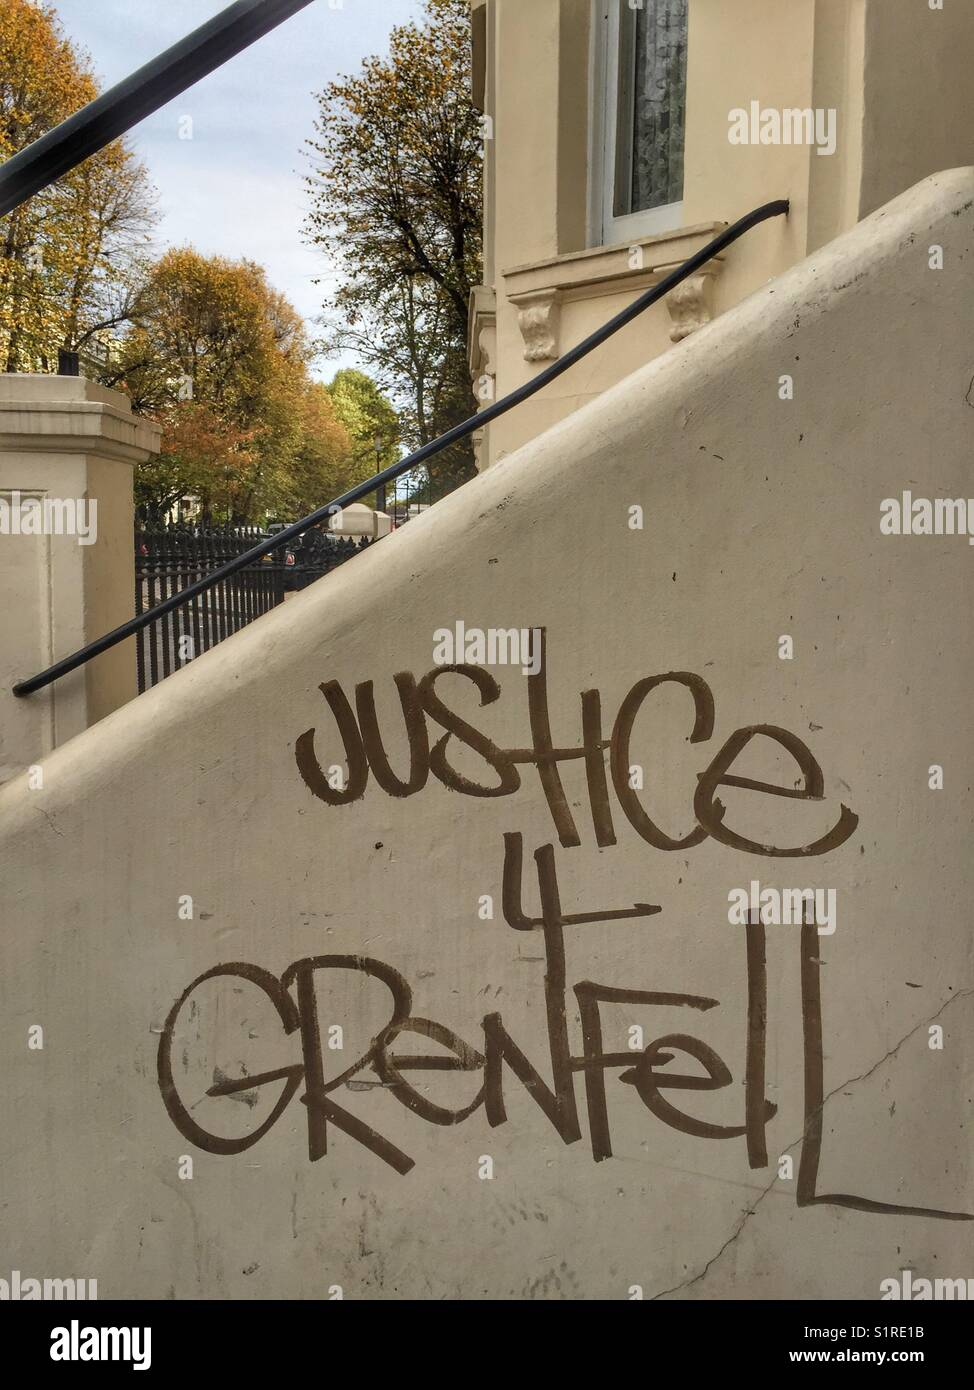 Justice 4 Grenfell graffiti outside a house on Cambridge Gardens in North London, England on October 28 2017 - Stock Image